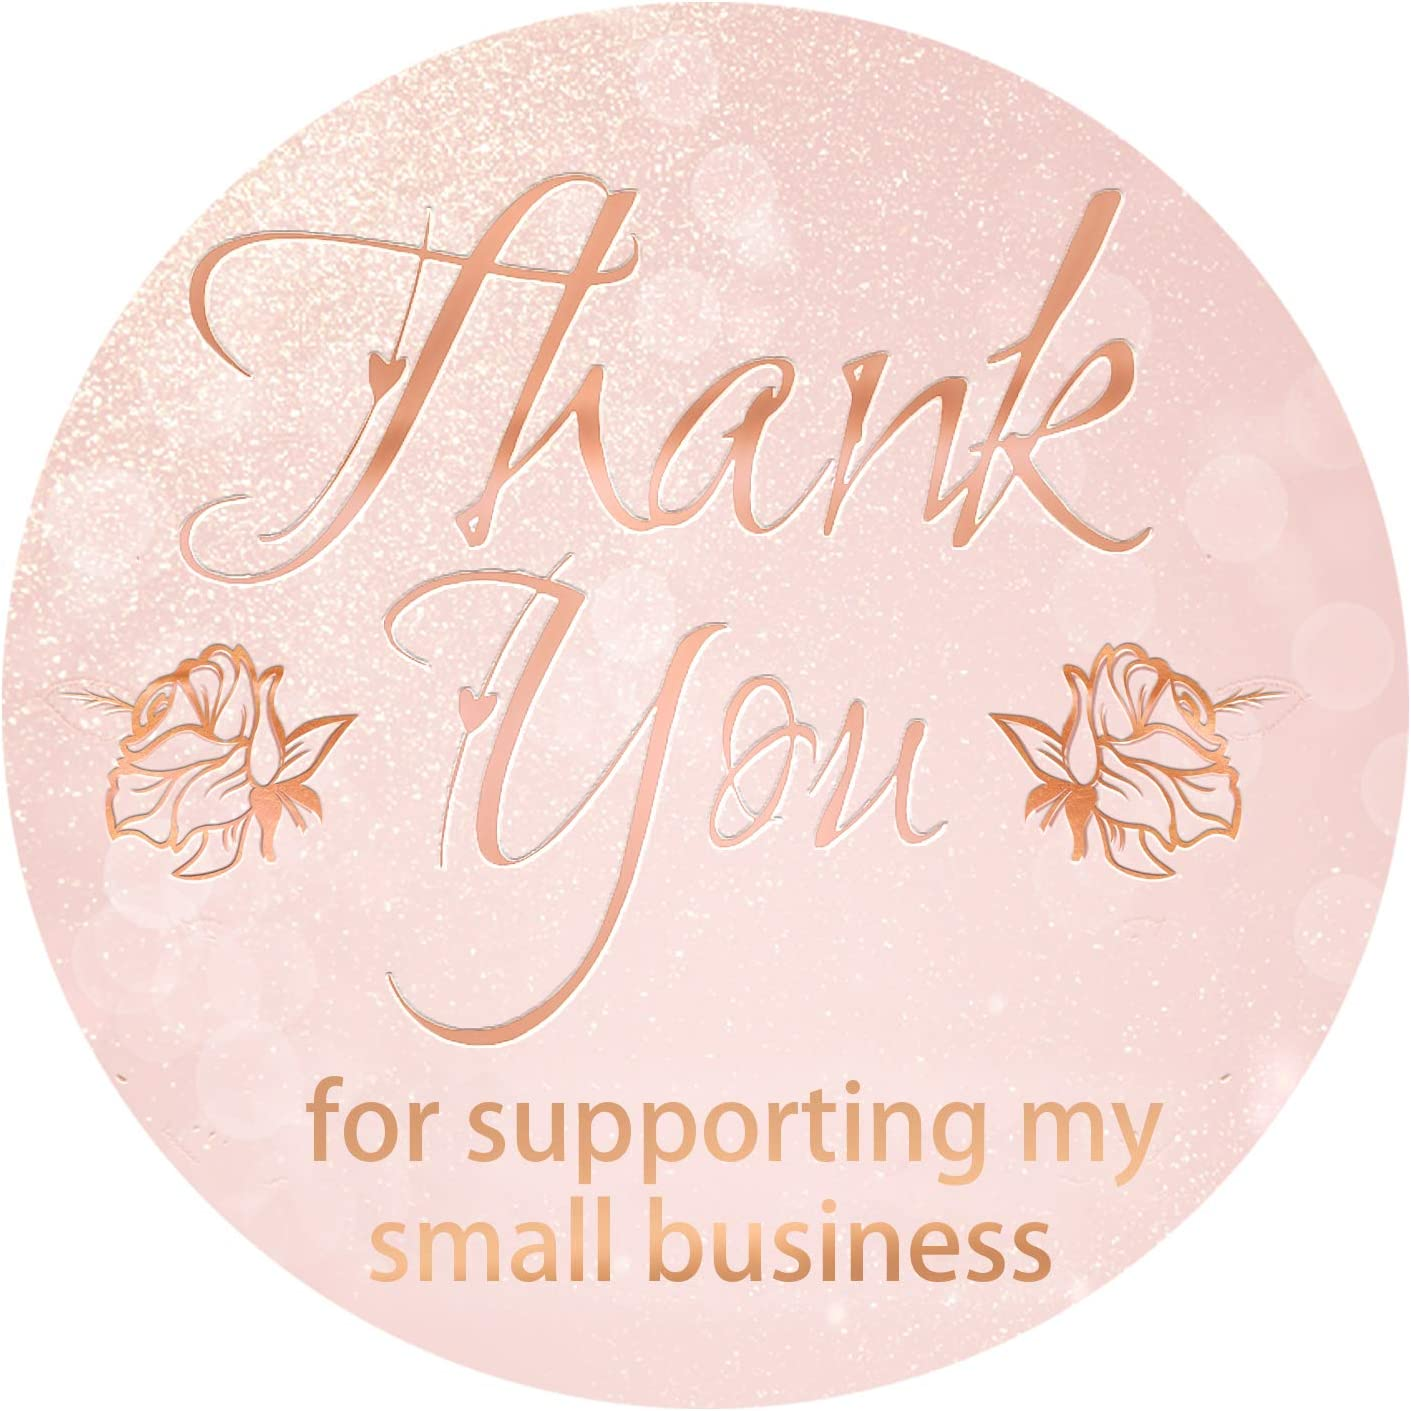 Thank You Stickers Roll 1.5'' Thank You Stickers Small Business Foil Thank You Tags 500 Labels/Roll for Envelope, Gift Bags, Boxes, Decoration (Foil Pink)